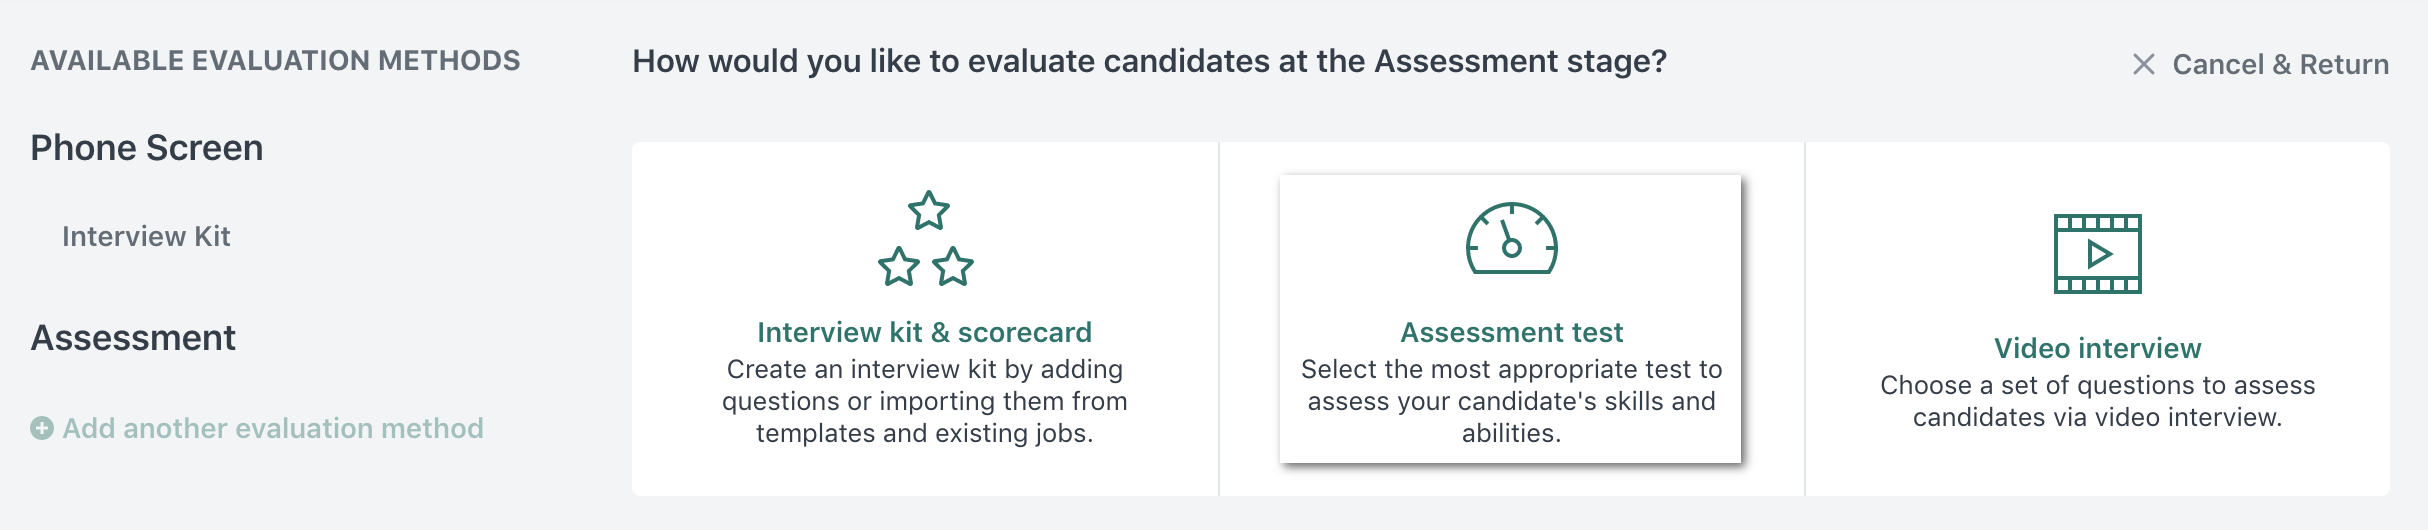 select_assessment.png